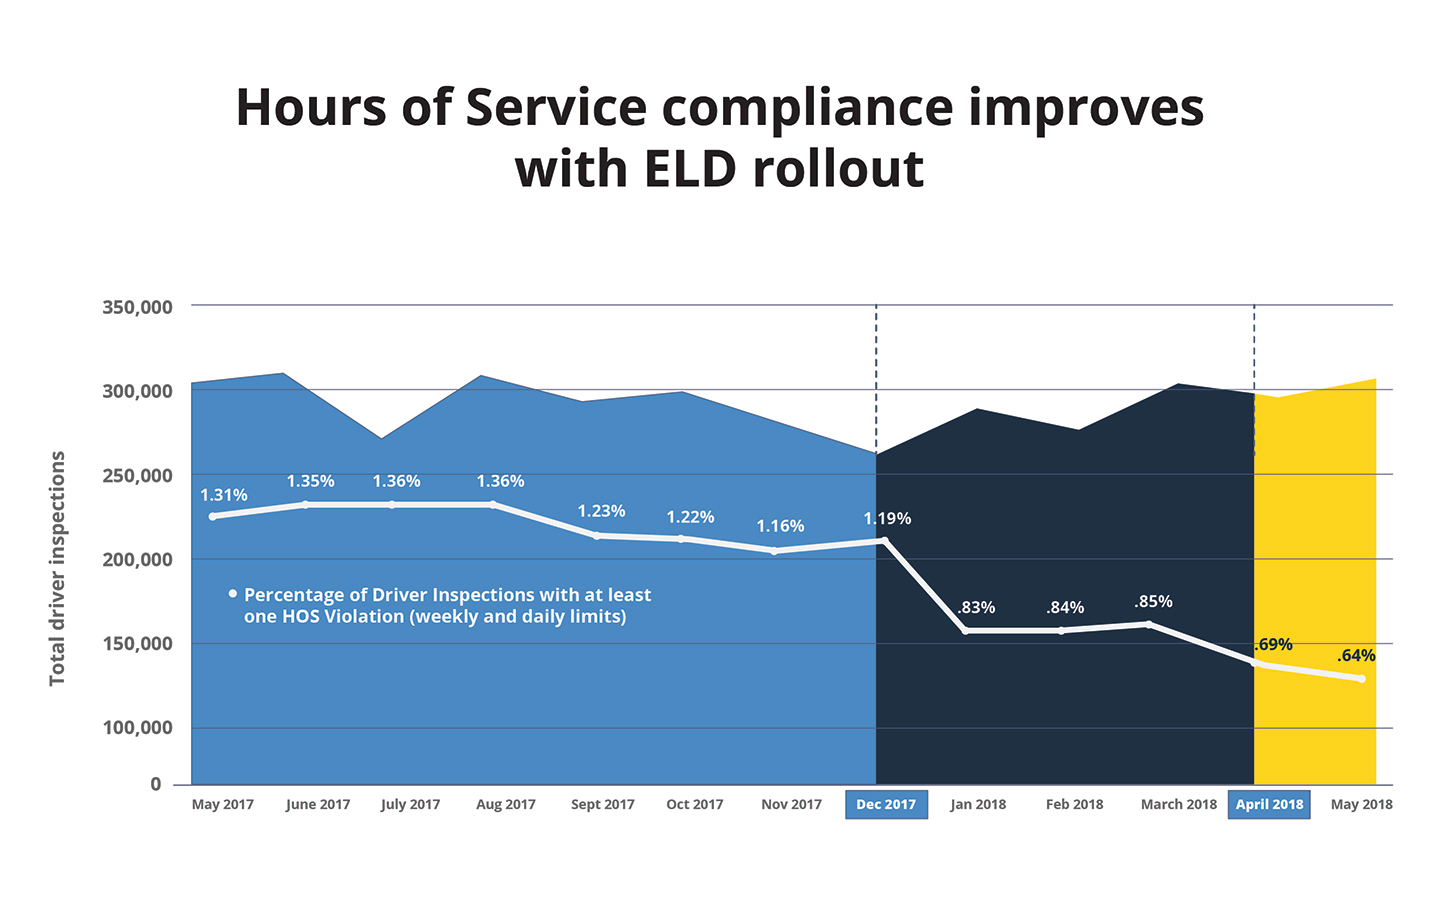 Hours of Service compliance improved after ELD mandate